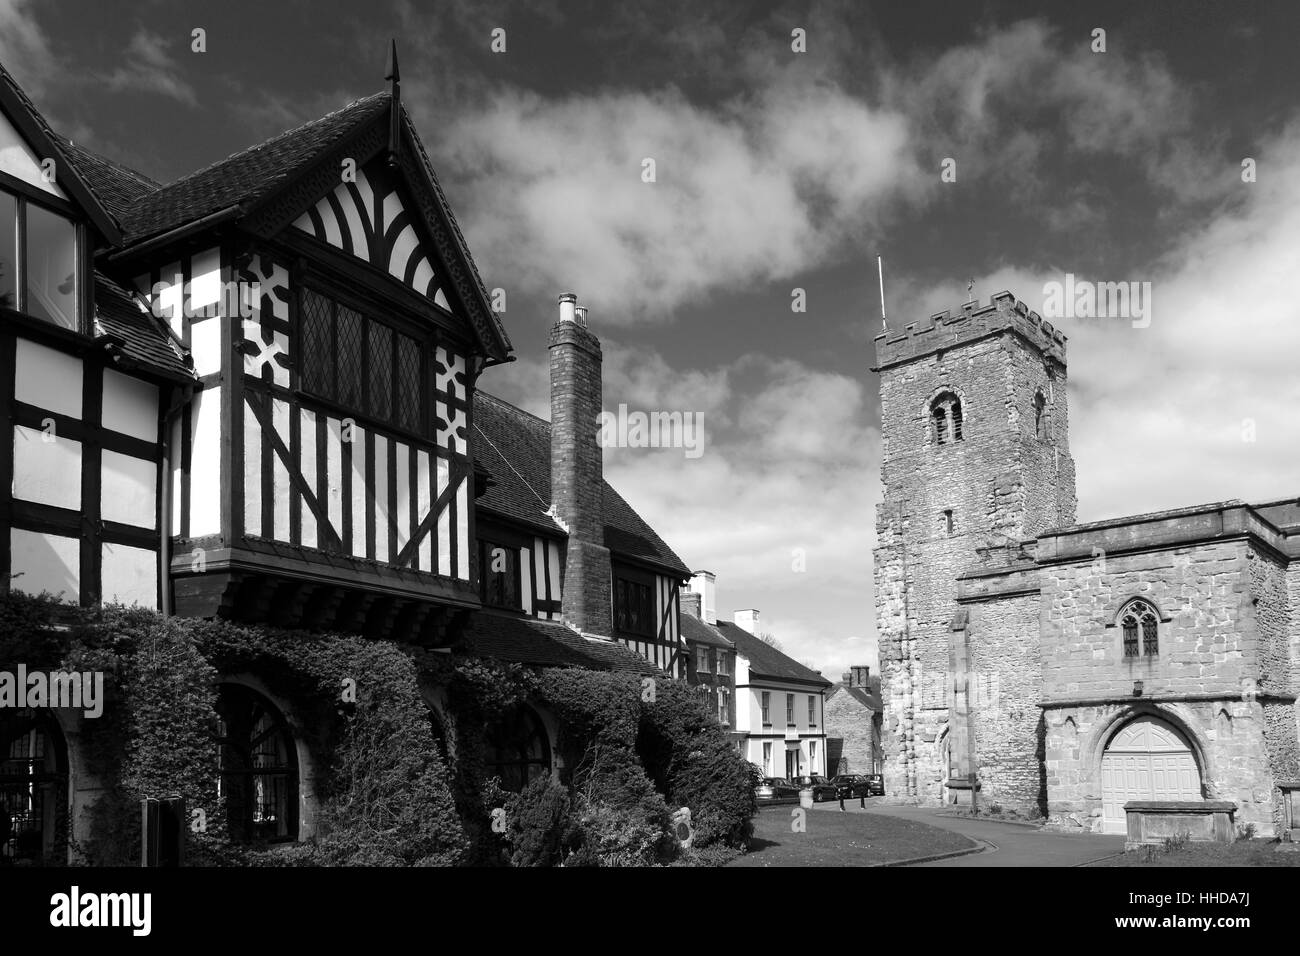 Spring, Holy Trinity parish church, Much Wenlock town, Shropshire County, England, UK - Stock Image